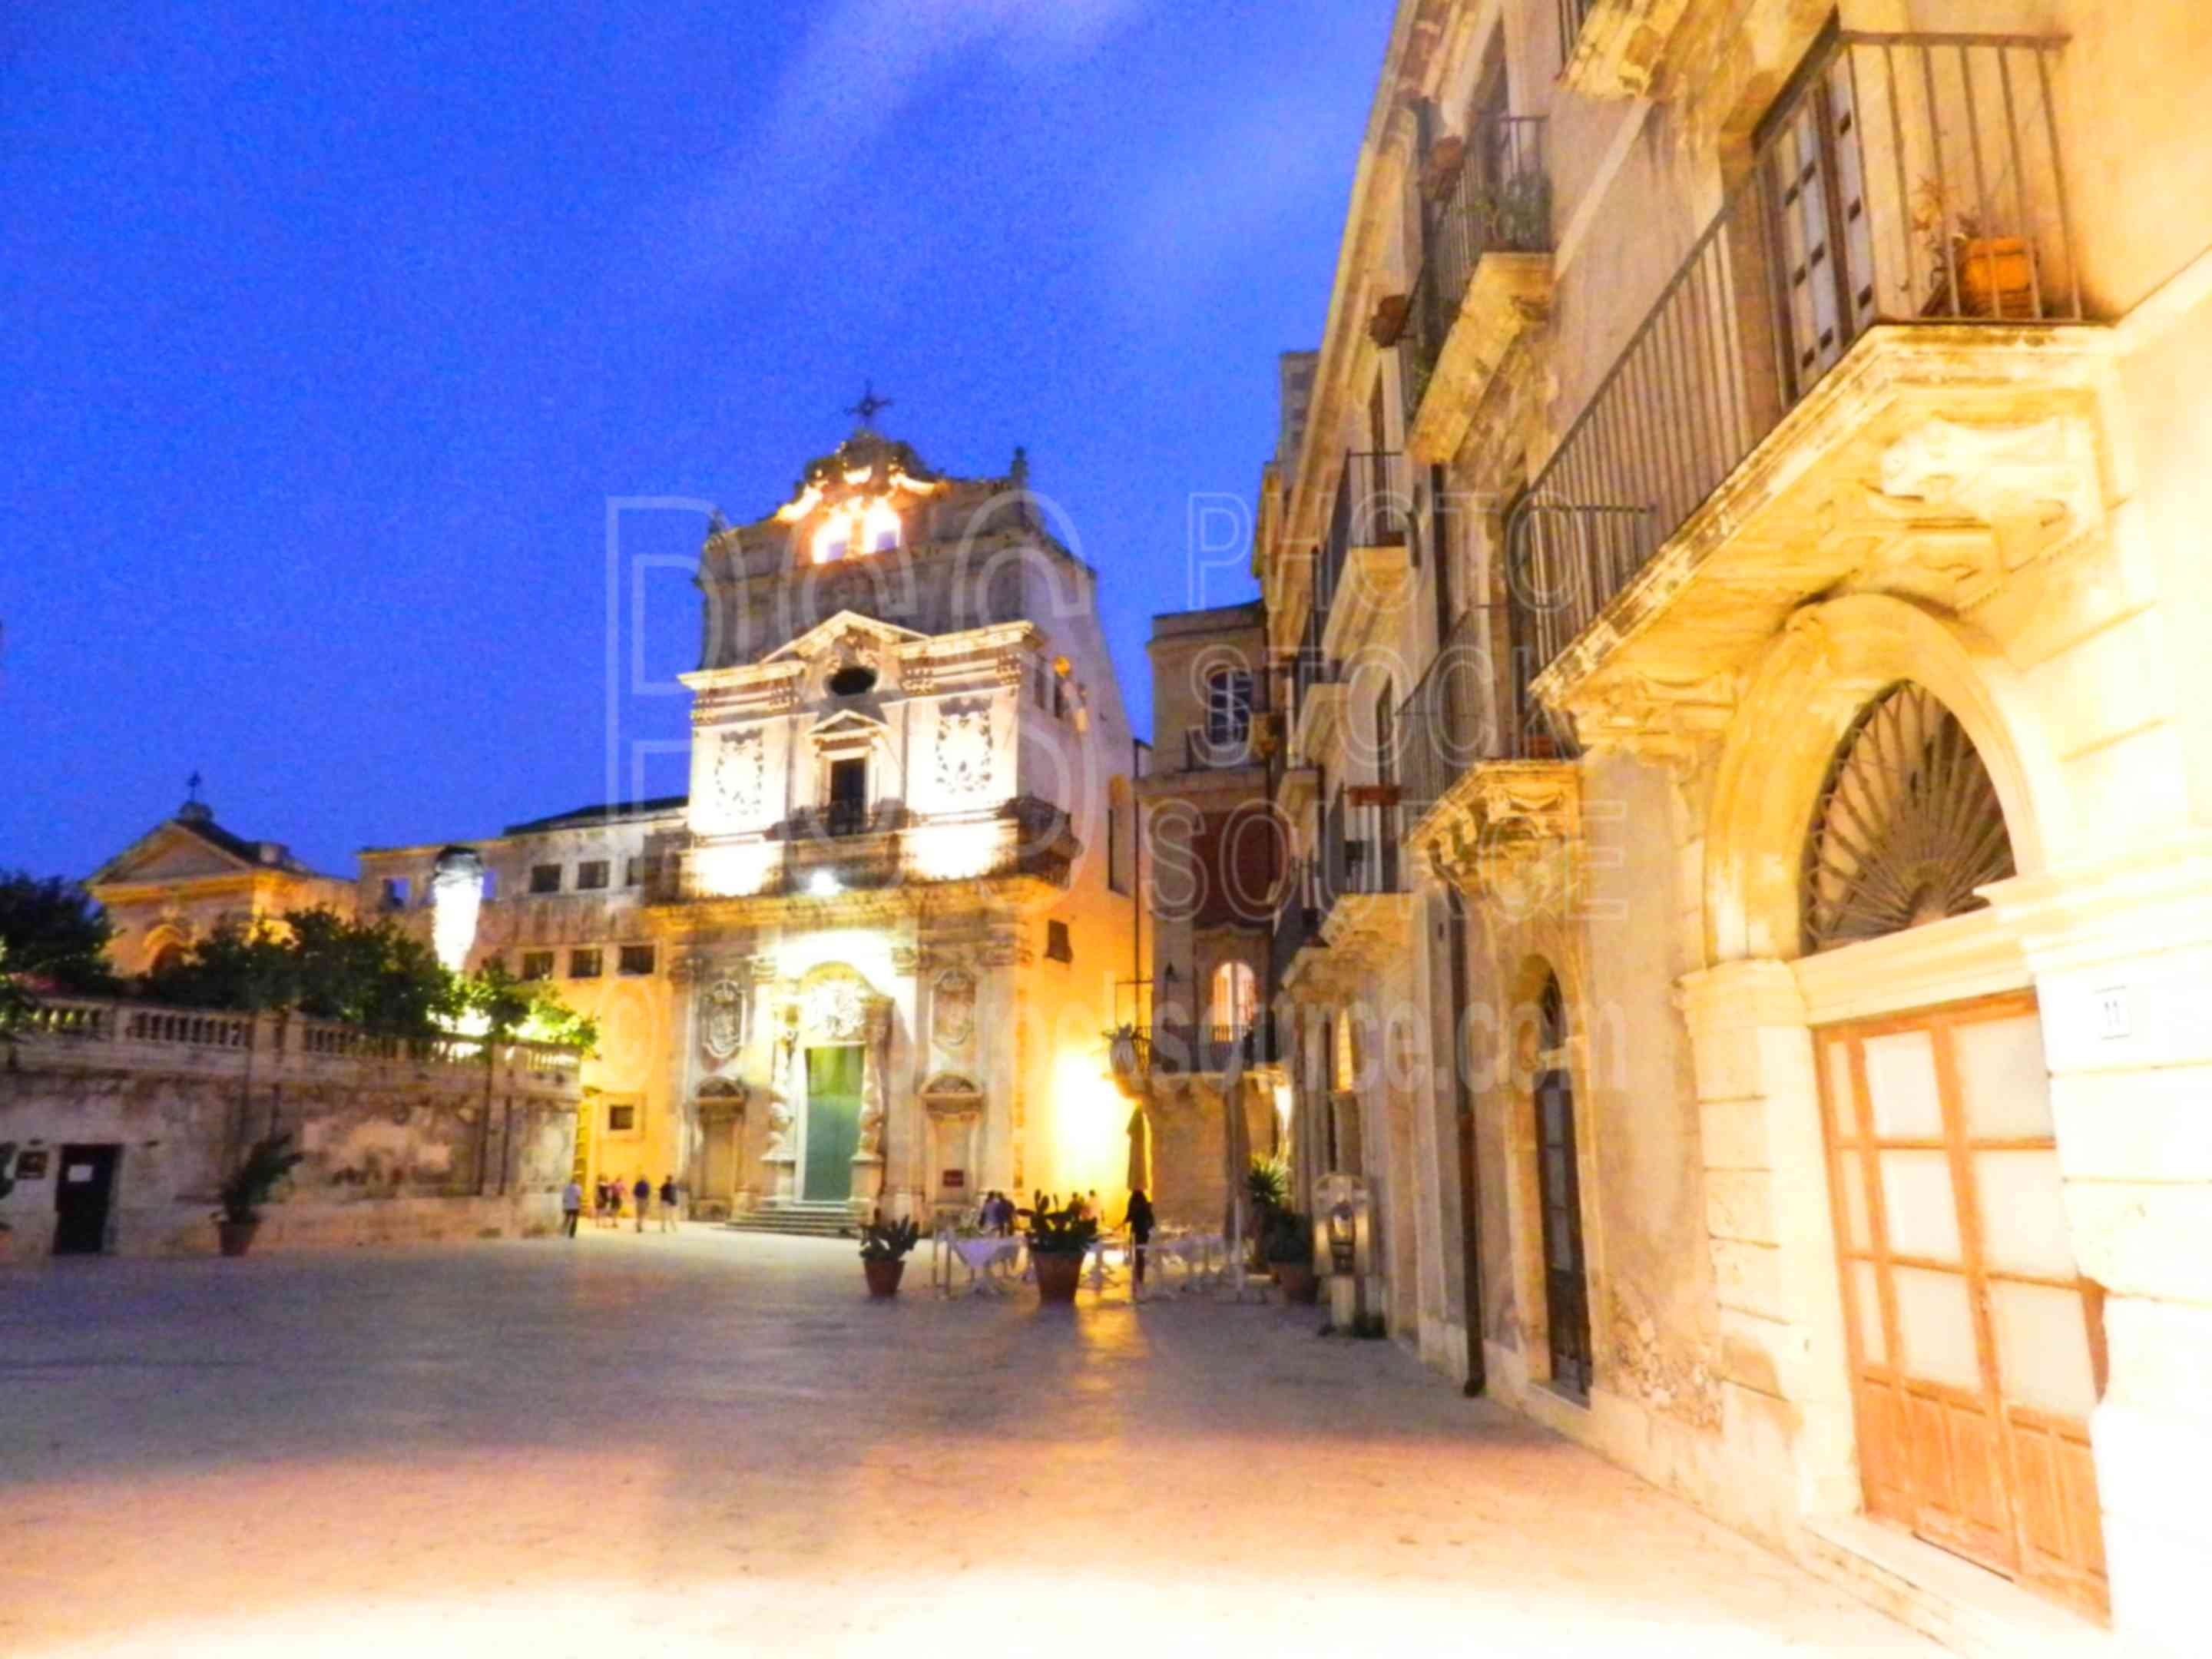 Santa Luchia at Night,siracusa,ortigia,ortygia,night,lights,duomo,cathedral,people